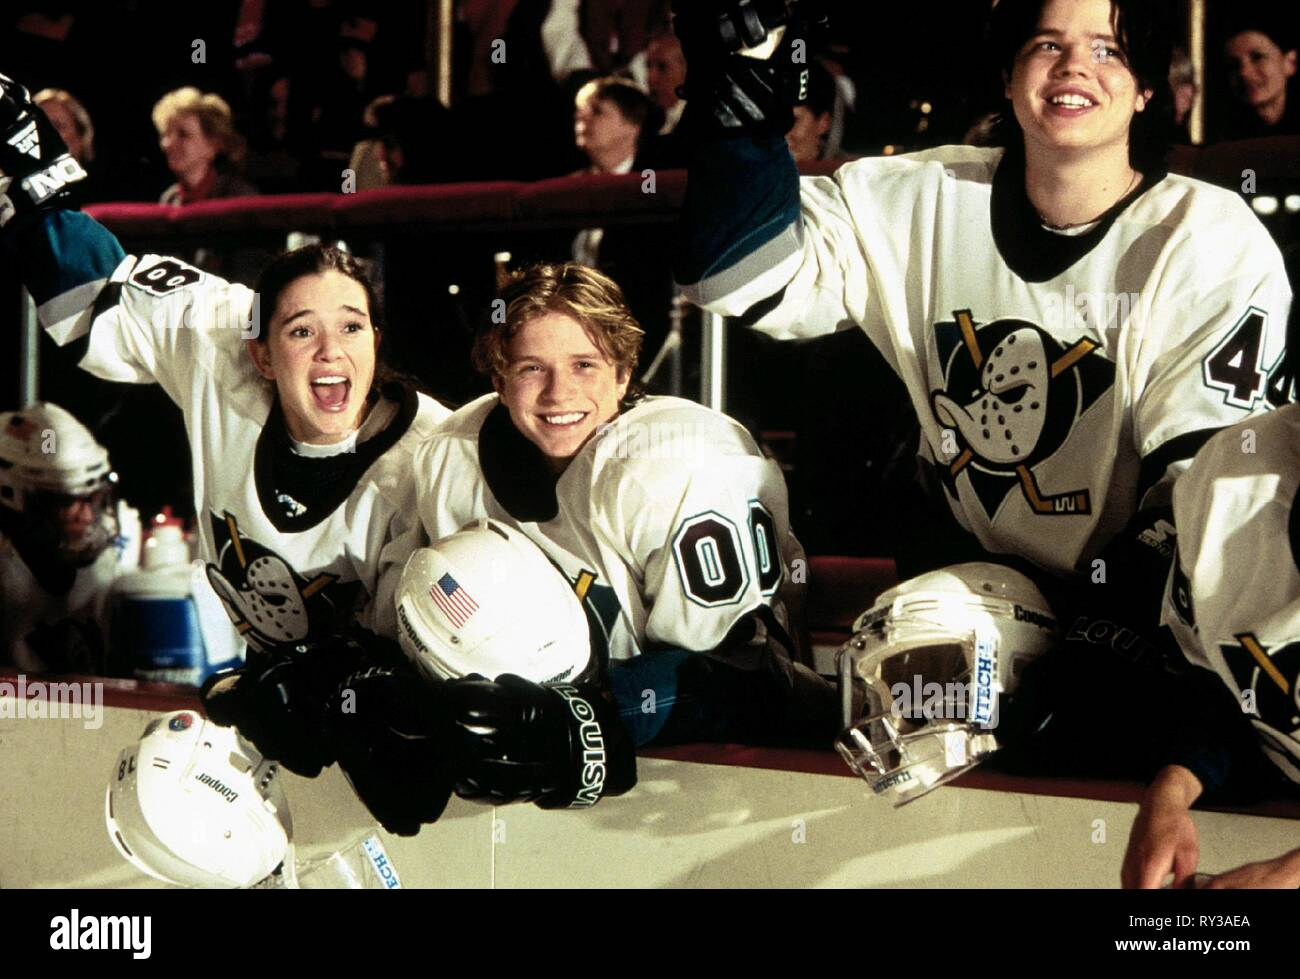 MOREAU,HENSON,HENSON, D3: THE MIGHTY DUCKS, 1996 - Stock Image